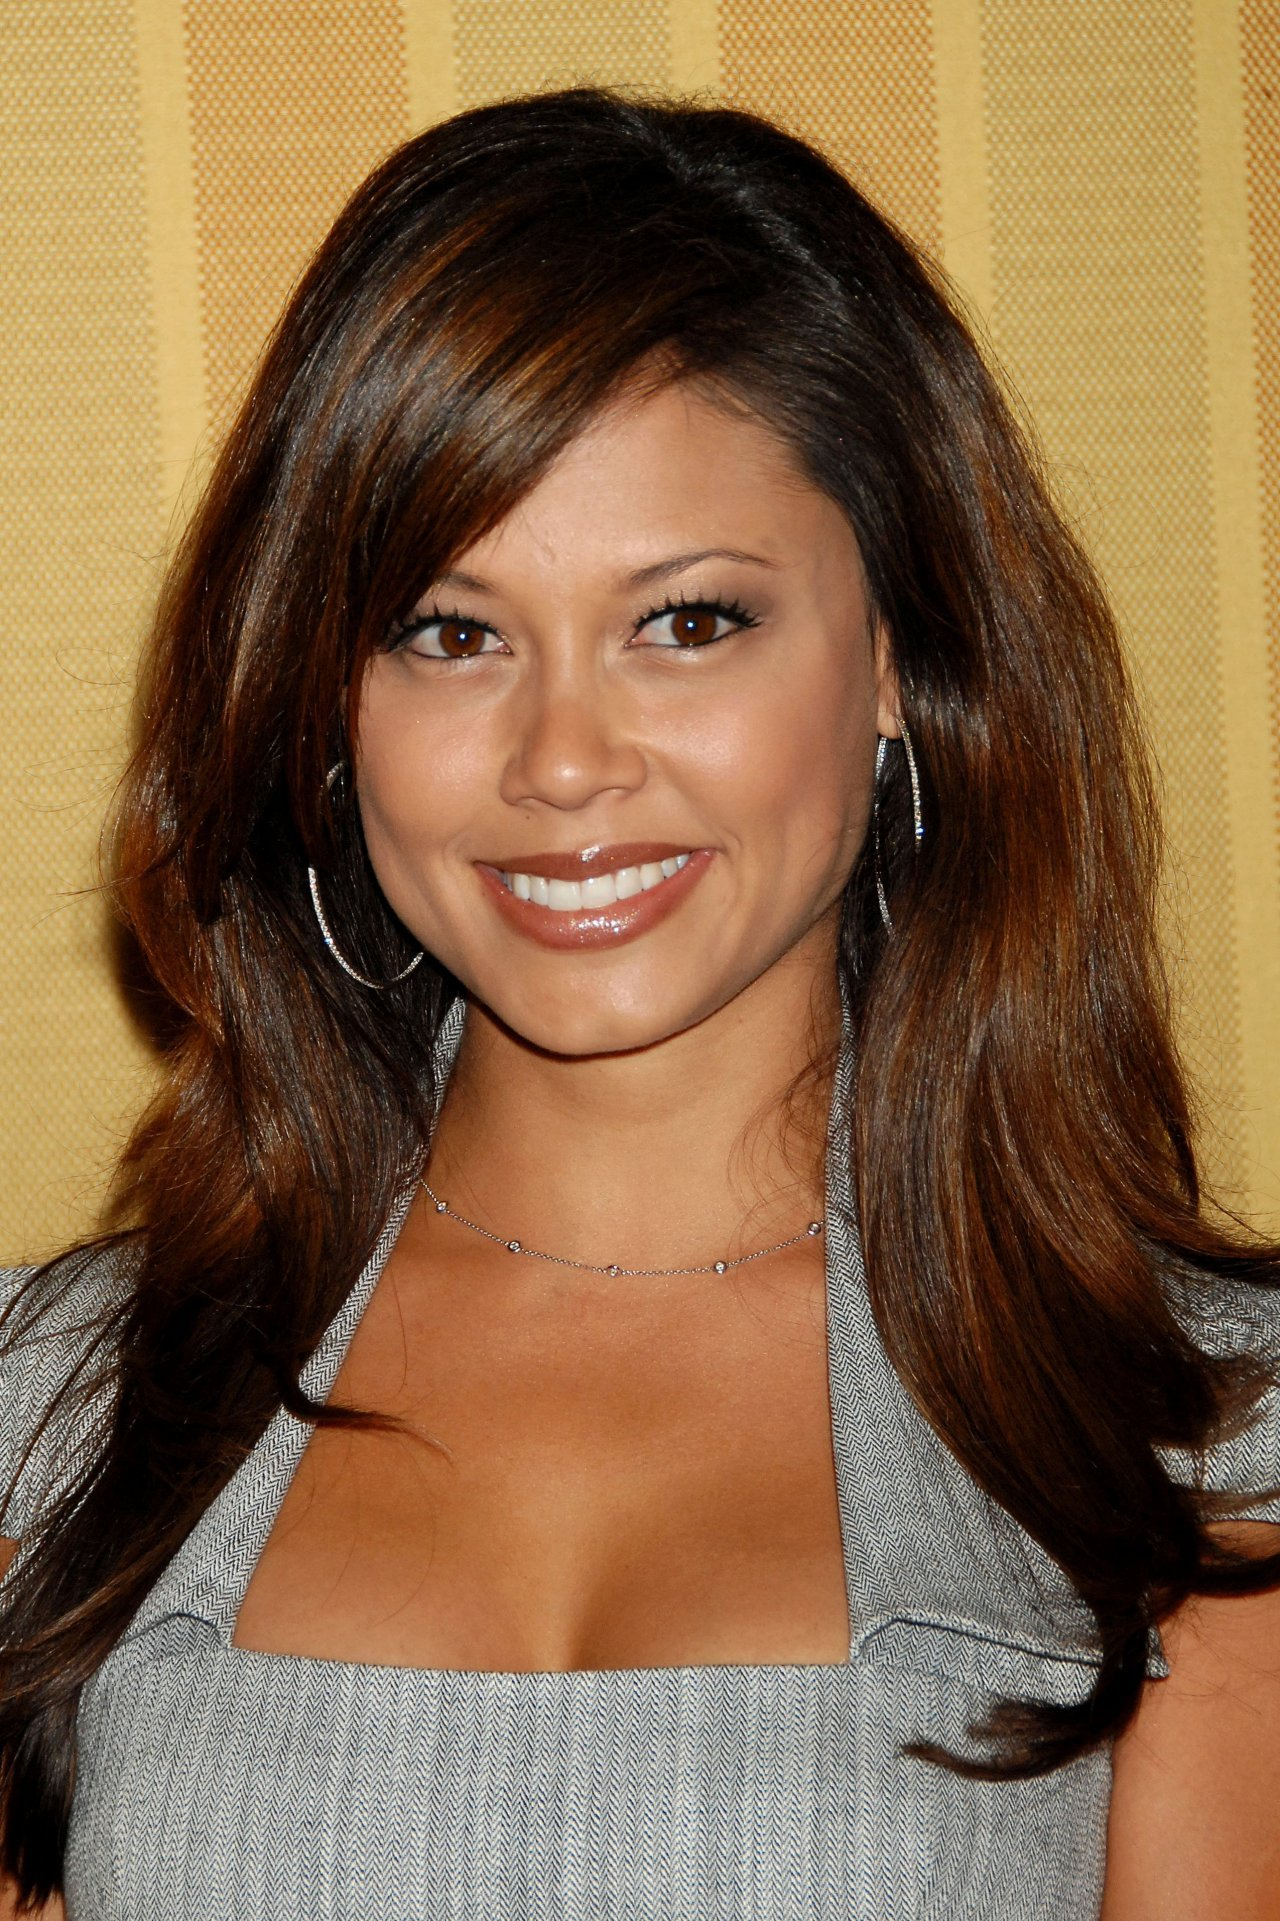 Vanessa Minnillo leaked wallpapers